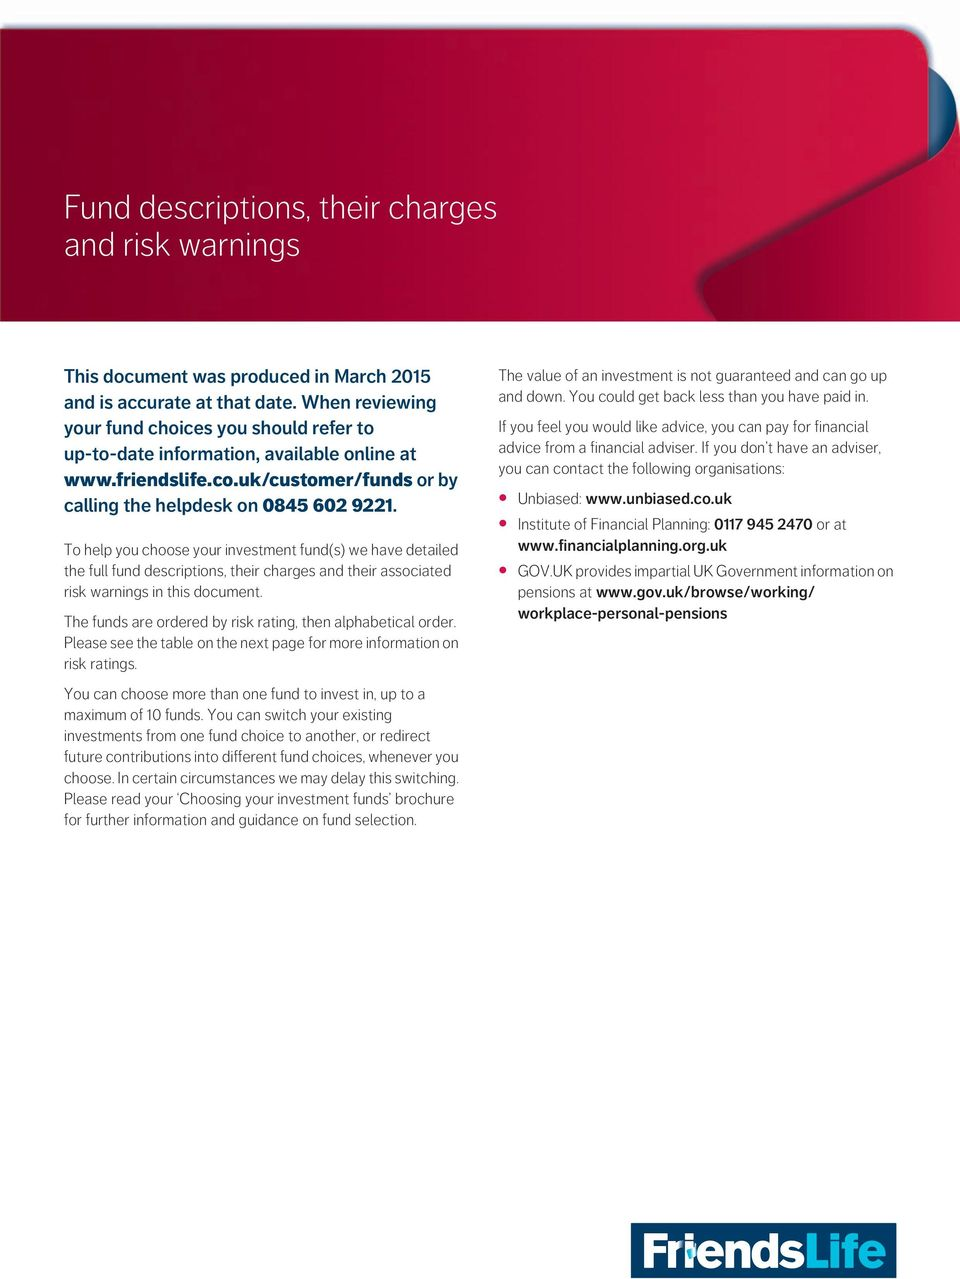 To help you choose your investment fund(s) we have detailed the full fund descriptions, their charges and their associated risk warnings in this document.